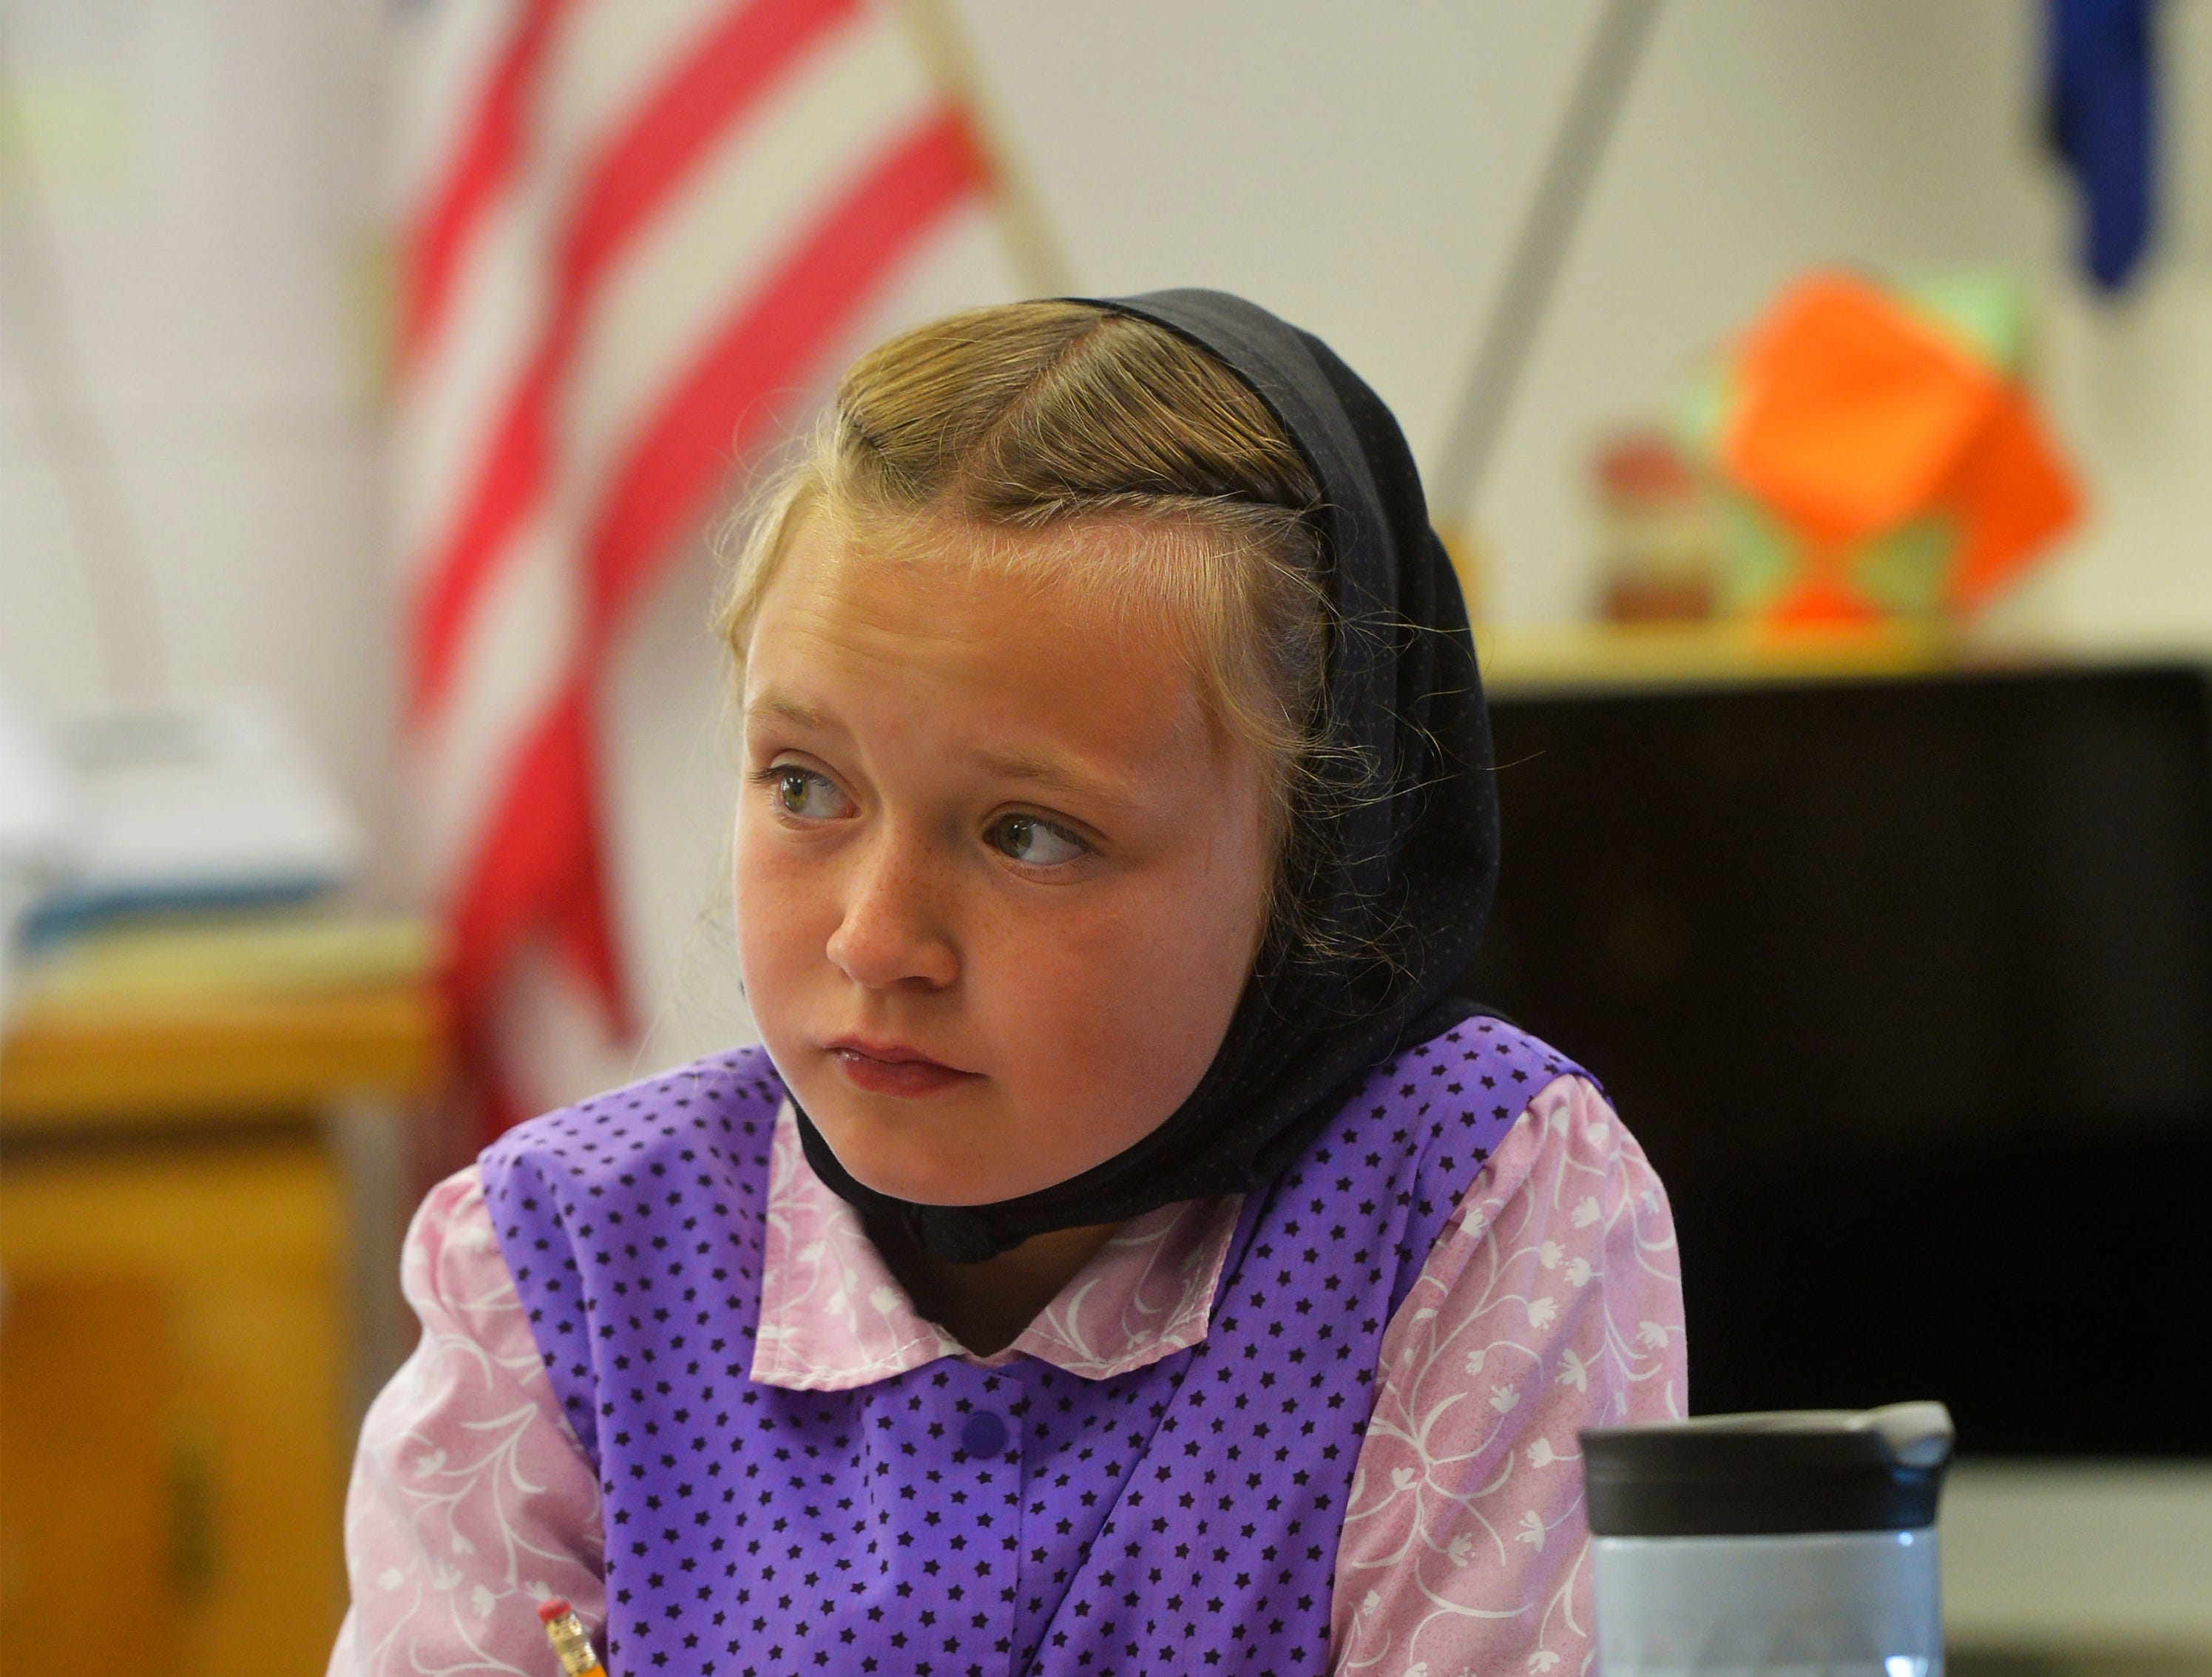 Fifth grader Danielle Stahl works at her desk in Traci Manseau's classroom on the Deerfield Hutterite Colony, Monday, Sept. 17, 2018. Manseau is a teaching veteran of 23 years and she has spent her entire career teaching in one room rural school houses.  She is currently teaching 15 students across seven different grade levels at the Deerfield Hutterite Colony in North Central Montana's Fergus County.